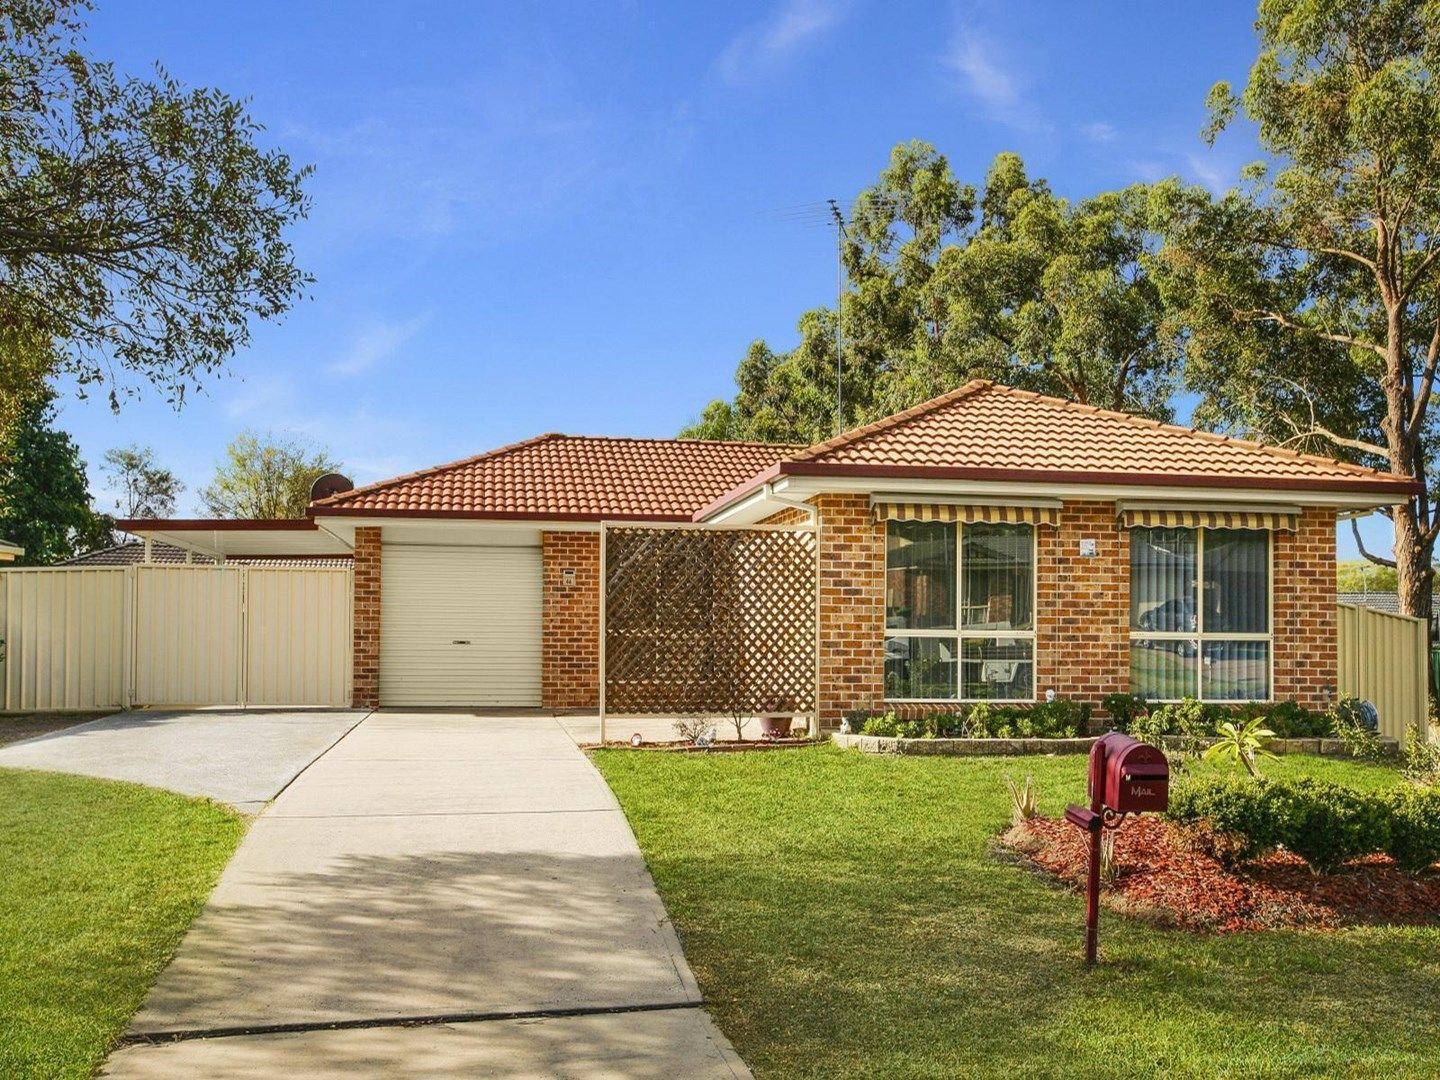 44 Paddy Miller Avenue, Currans Hill NSW 2567, Image 0